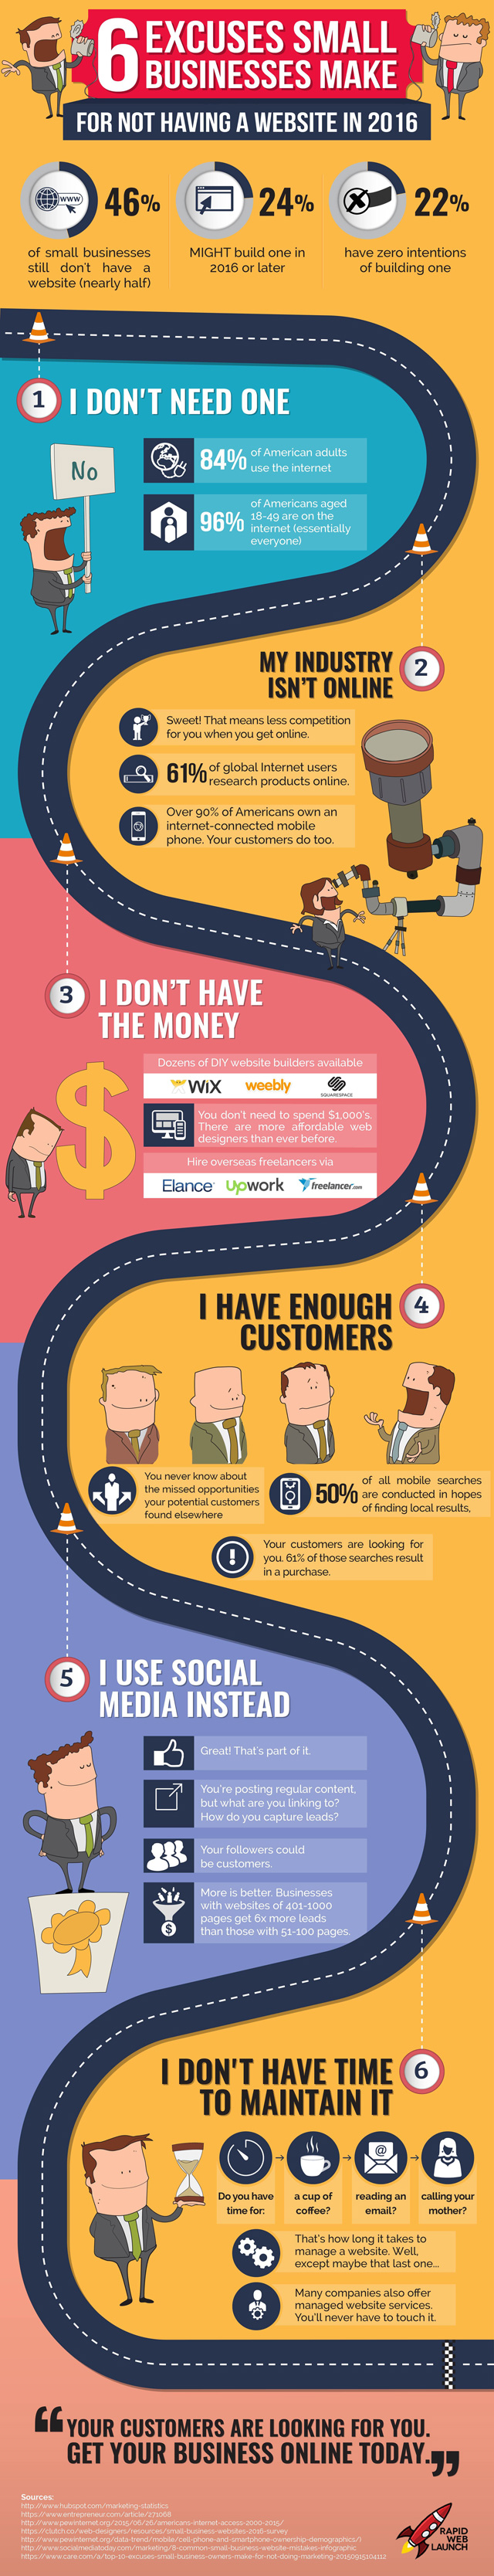 Infographic containing excuses why small businesses don't have a website in 2016.